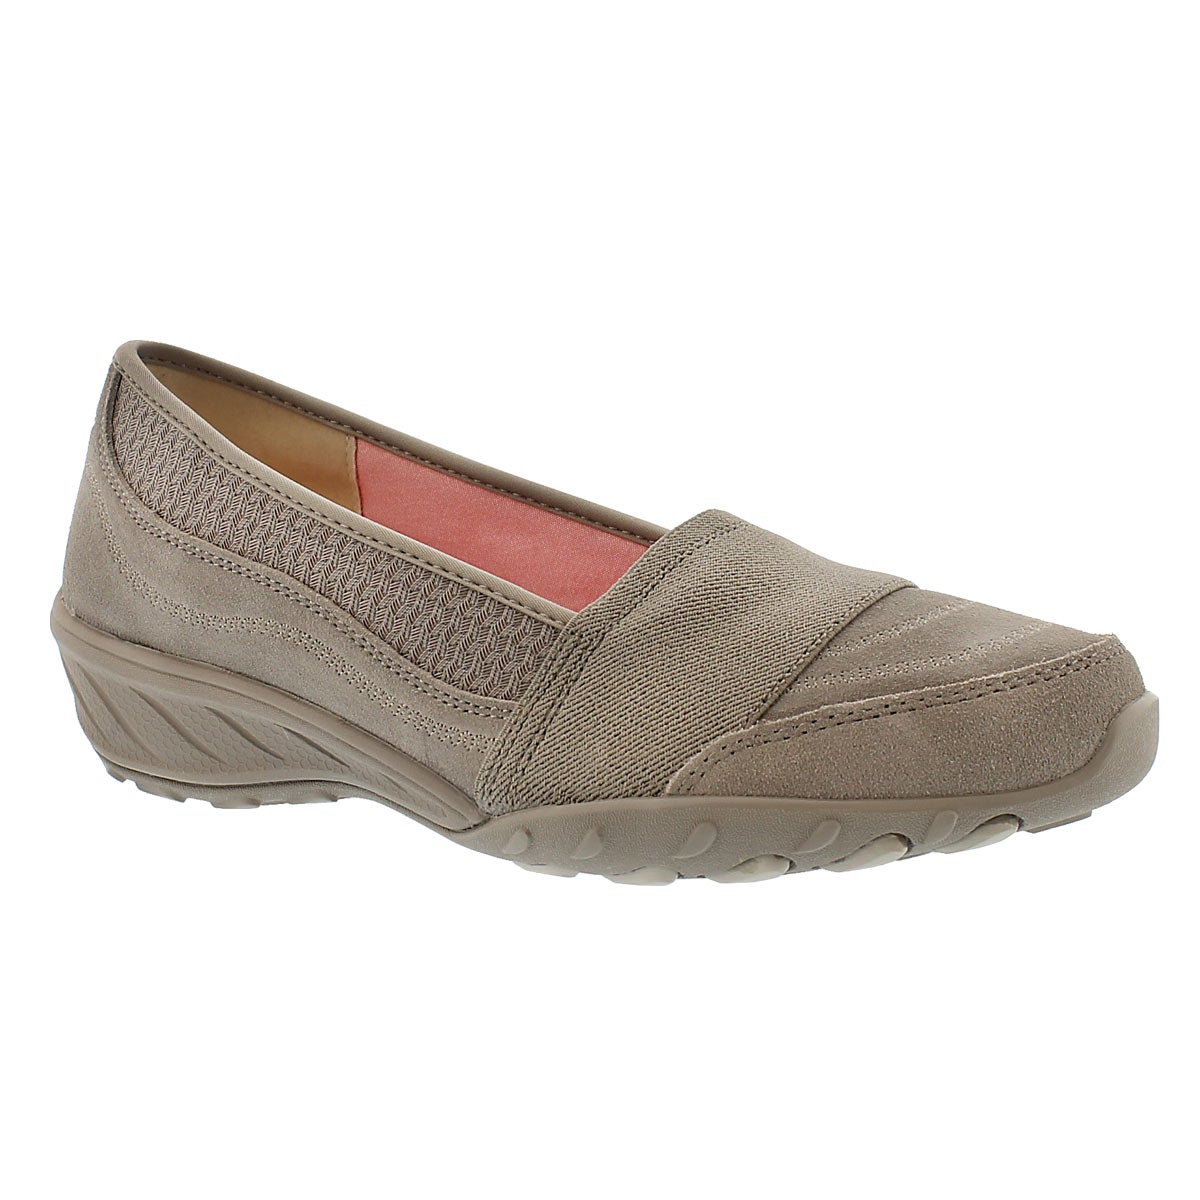 Lds Savvy taupe slip on casual shoe